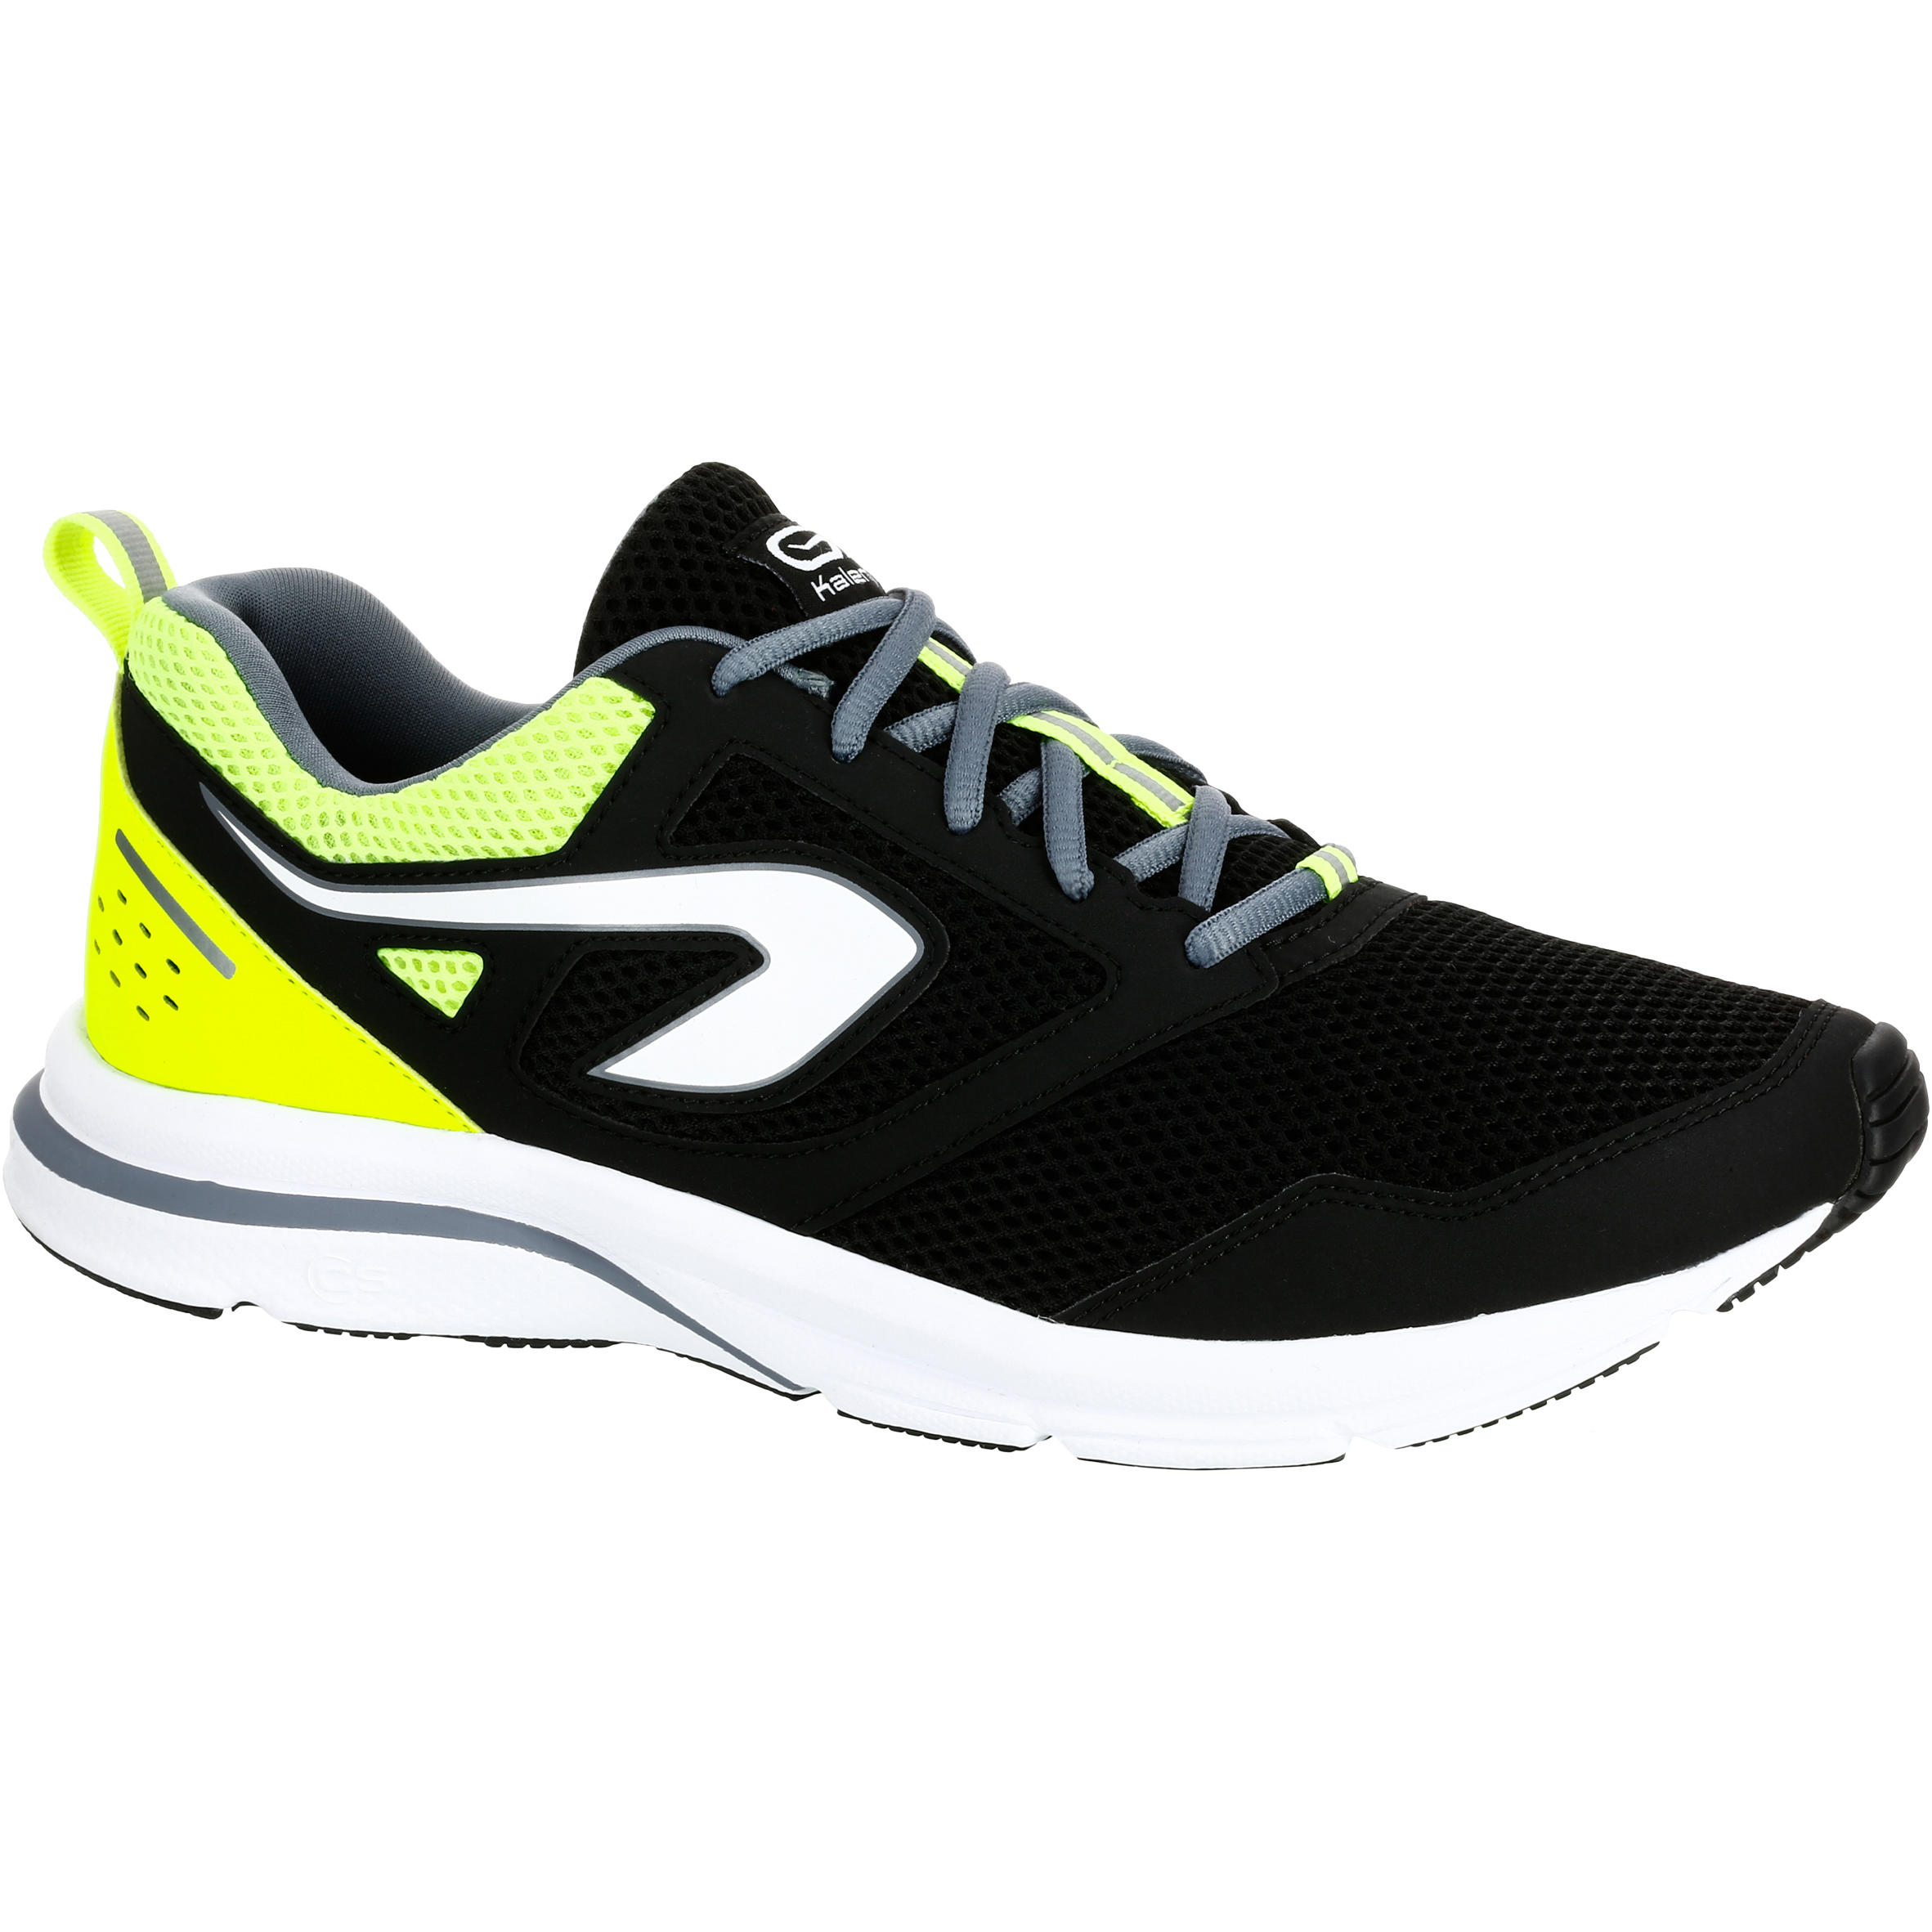 RUN ACTIVE MEN'S RUNNING SHOES - BLACK/YELLOW